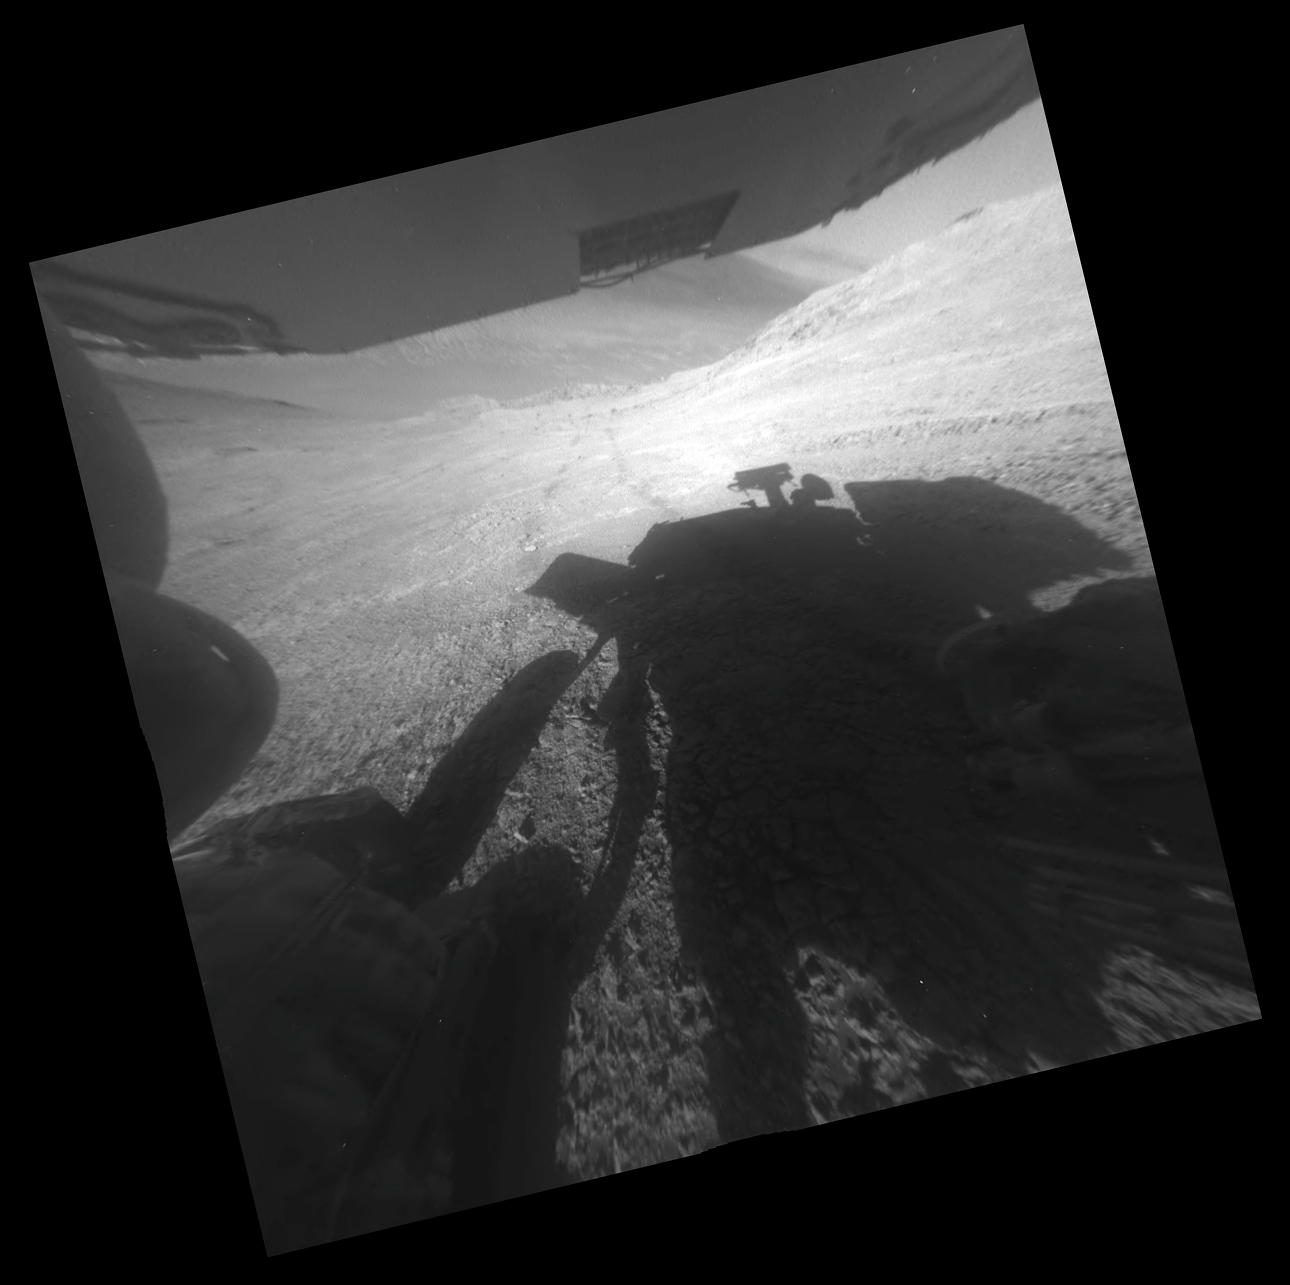 A shadow and tracks of NASA's Mars rover Opportunity appear in this March 22, 2016, image, which has been rotated 13.5 degrees to adjust for the tilt of the rover. The hillside descends to the left into 'Marathon Valley.' The floor of Endeavour Crater is seen beneath the underside of a solar panel.